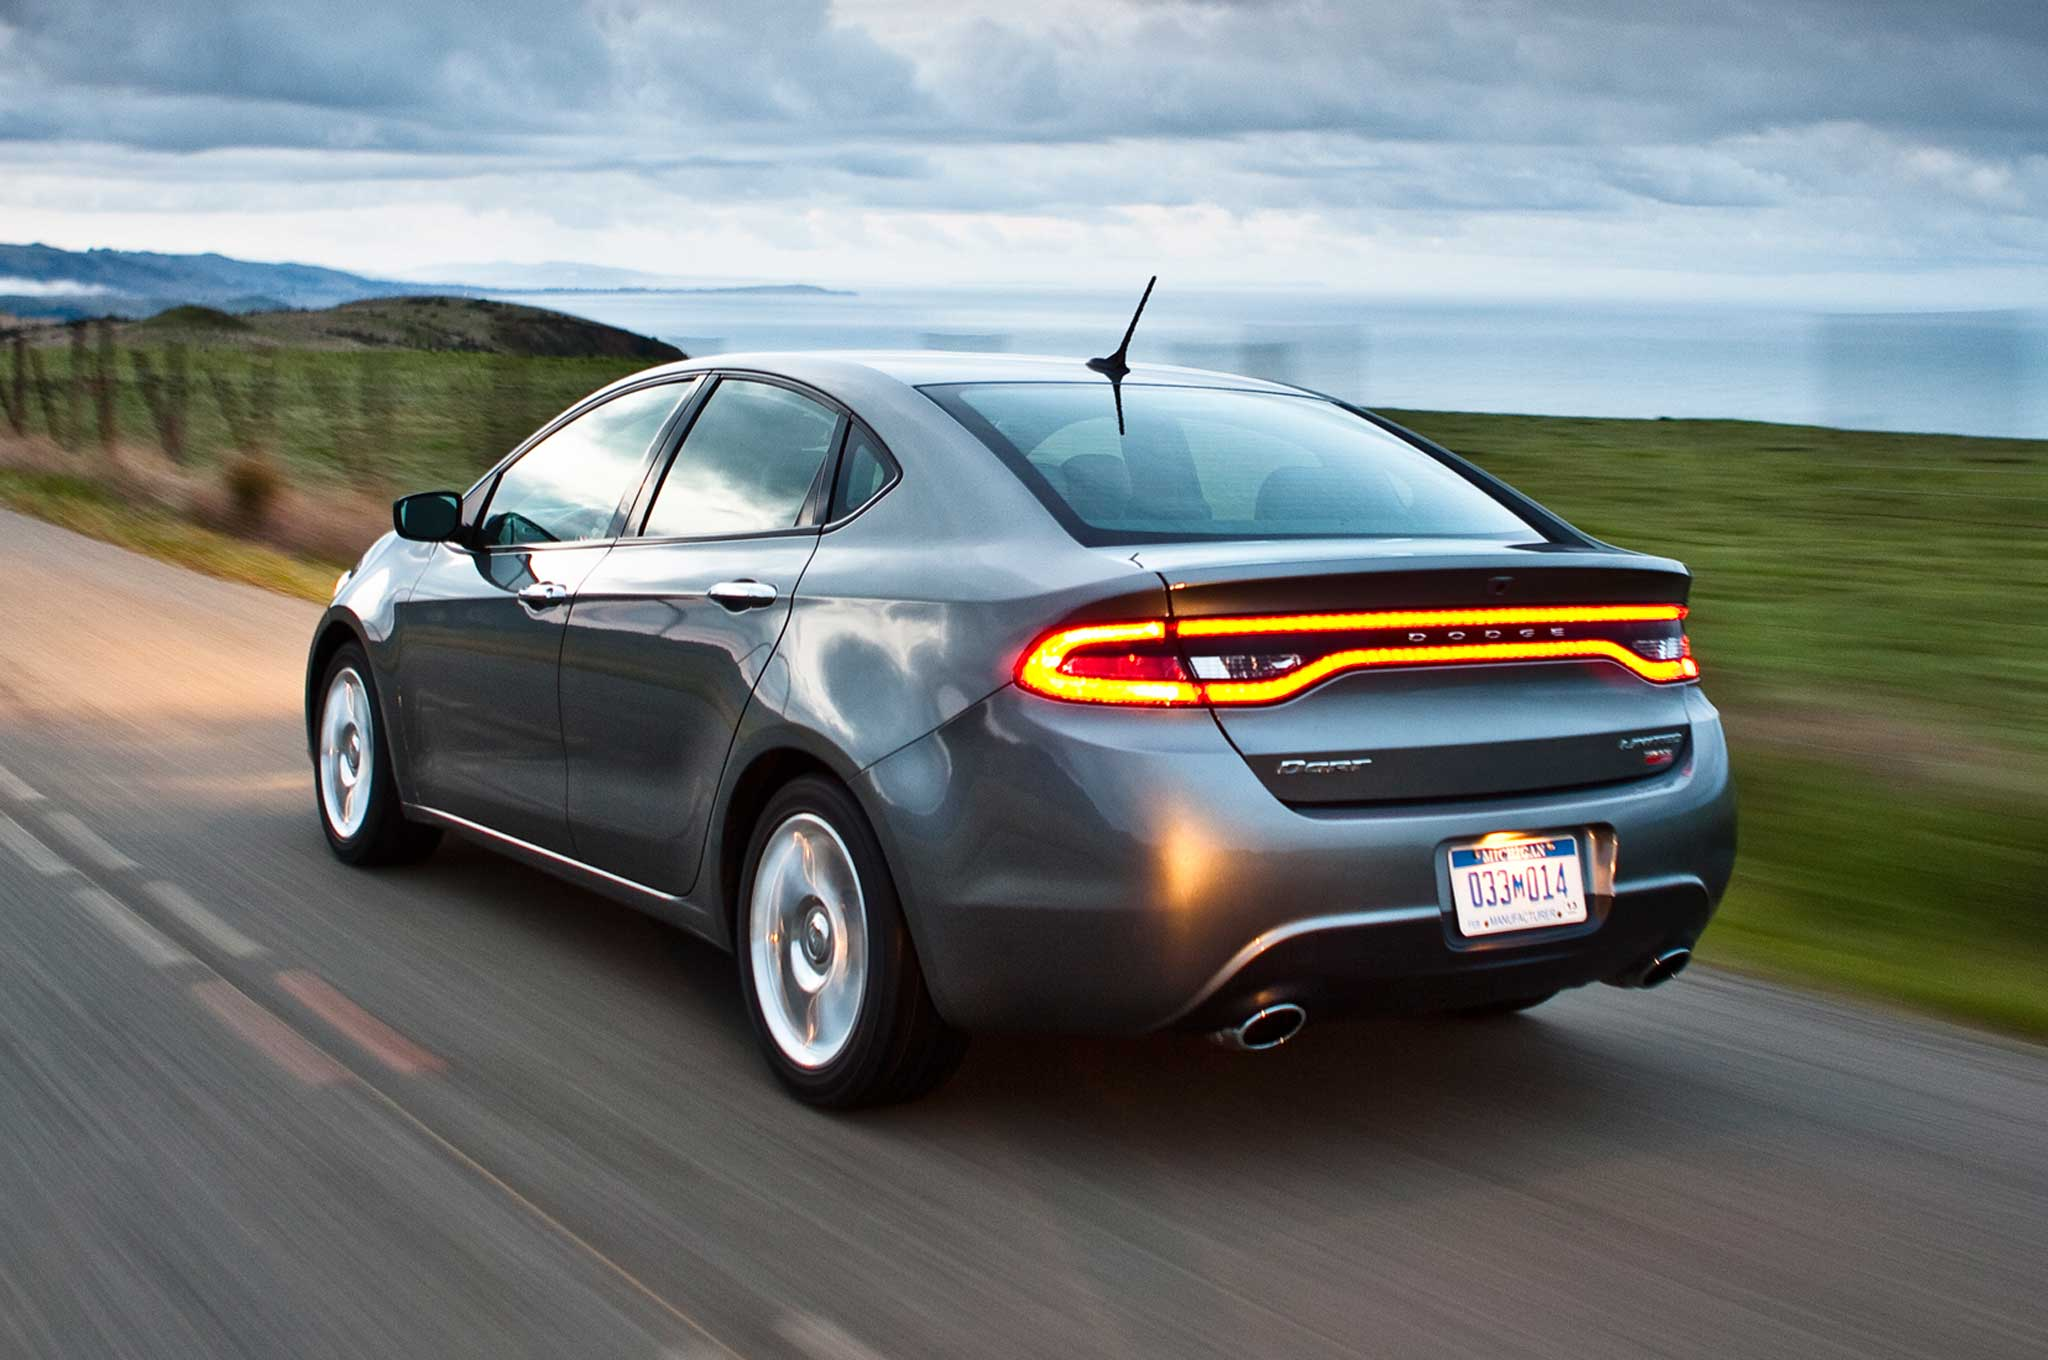 h drive dodge news first dart